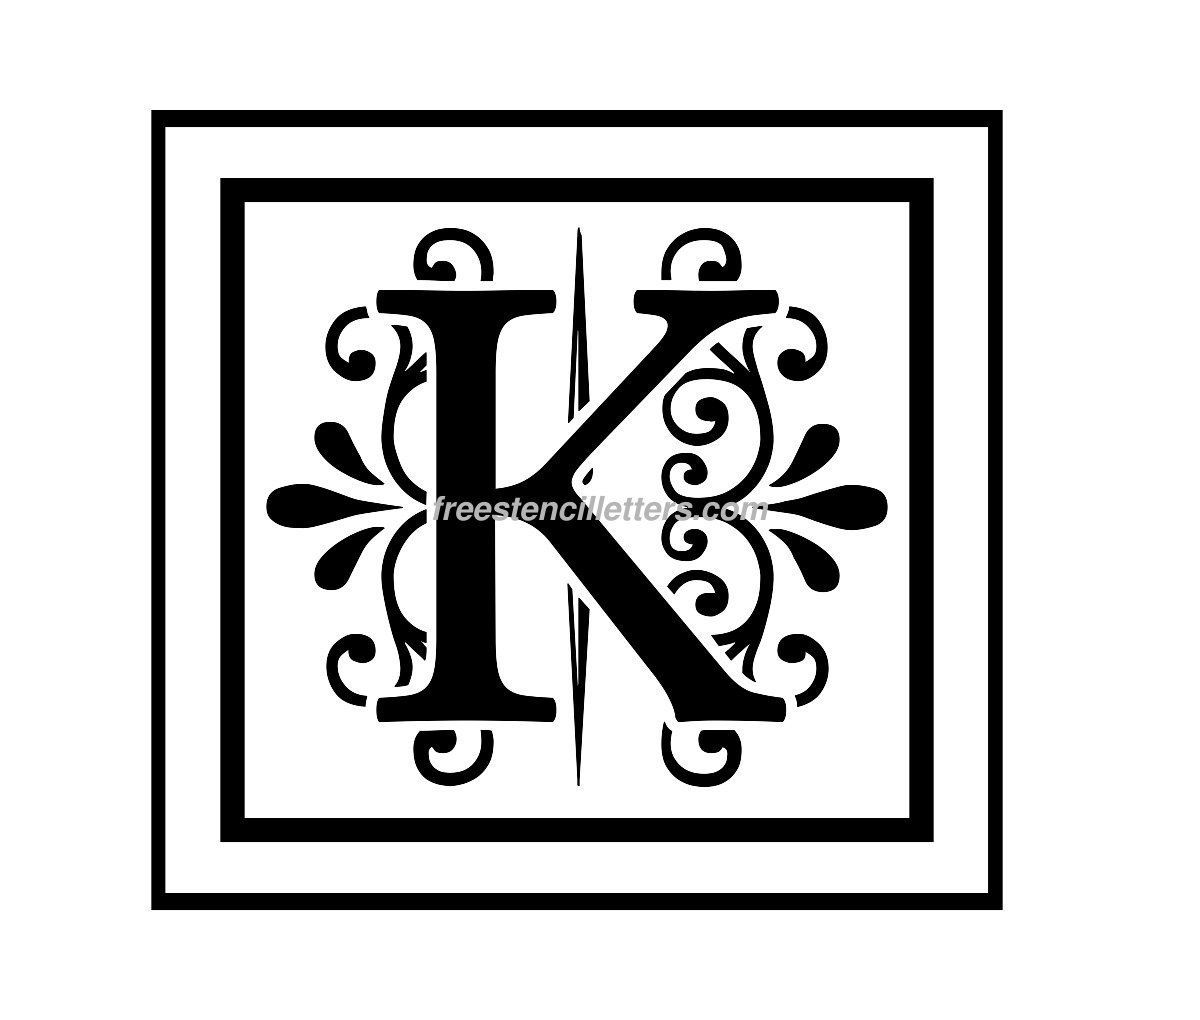 image relating to Free Printable Stencils to Cut Out called Print K Letter Stencil - Absolutely free Stencil Letters